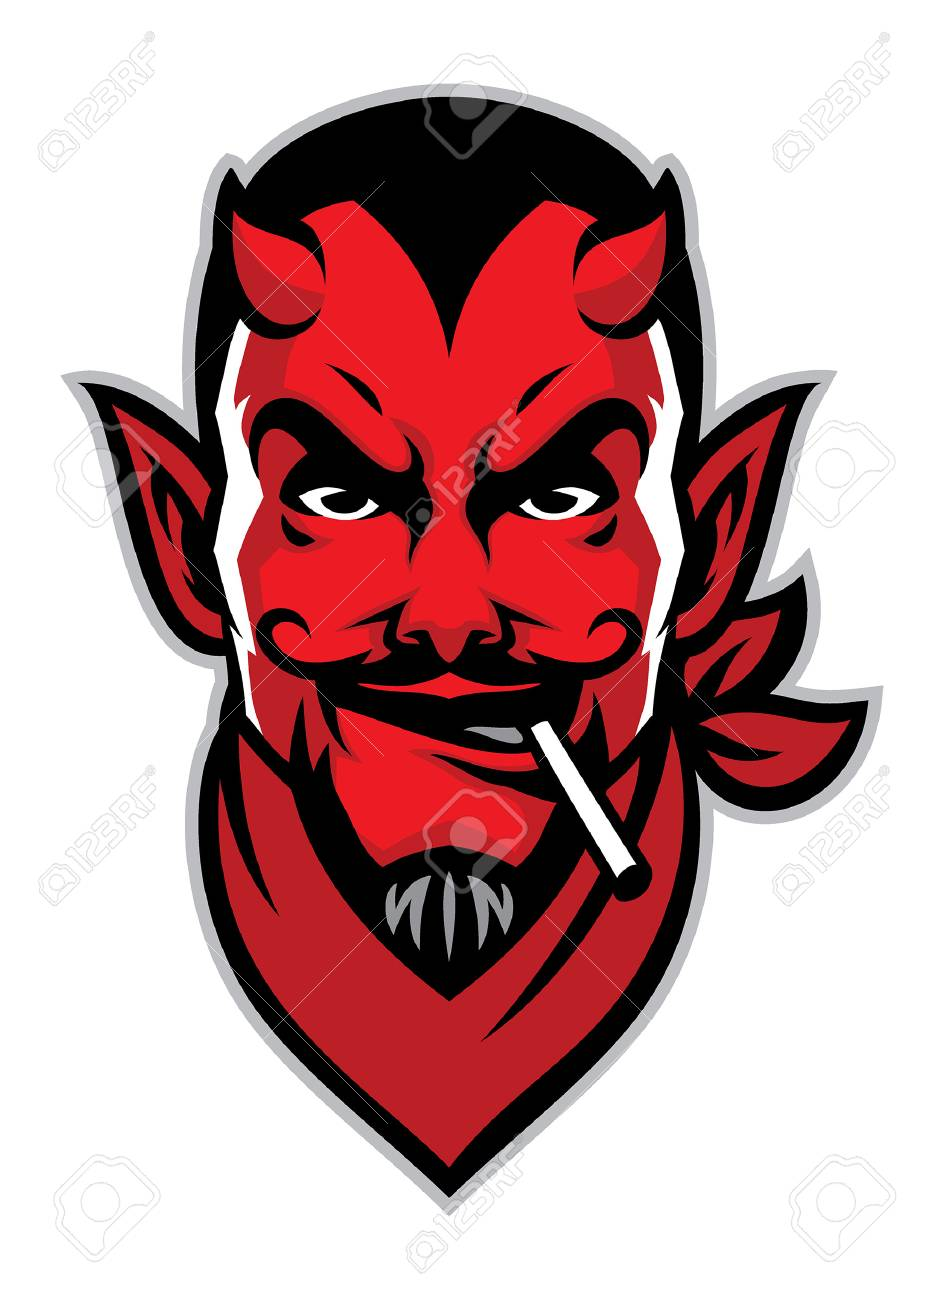 head mascot of devil with cigarette on his mouth - 120647251